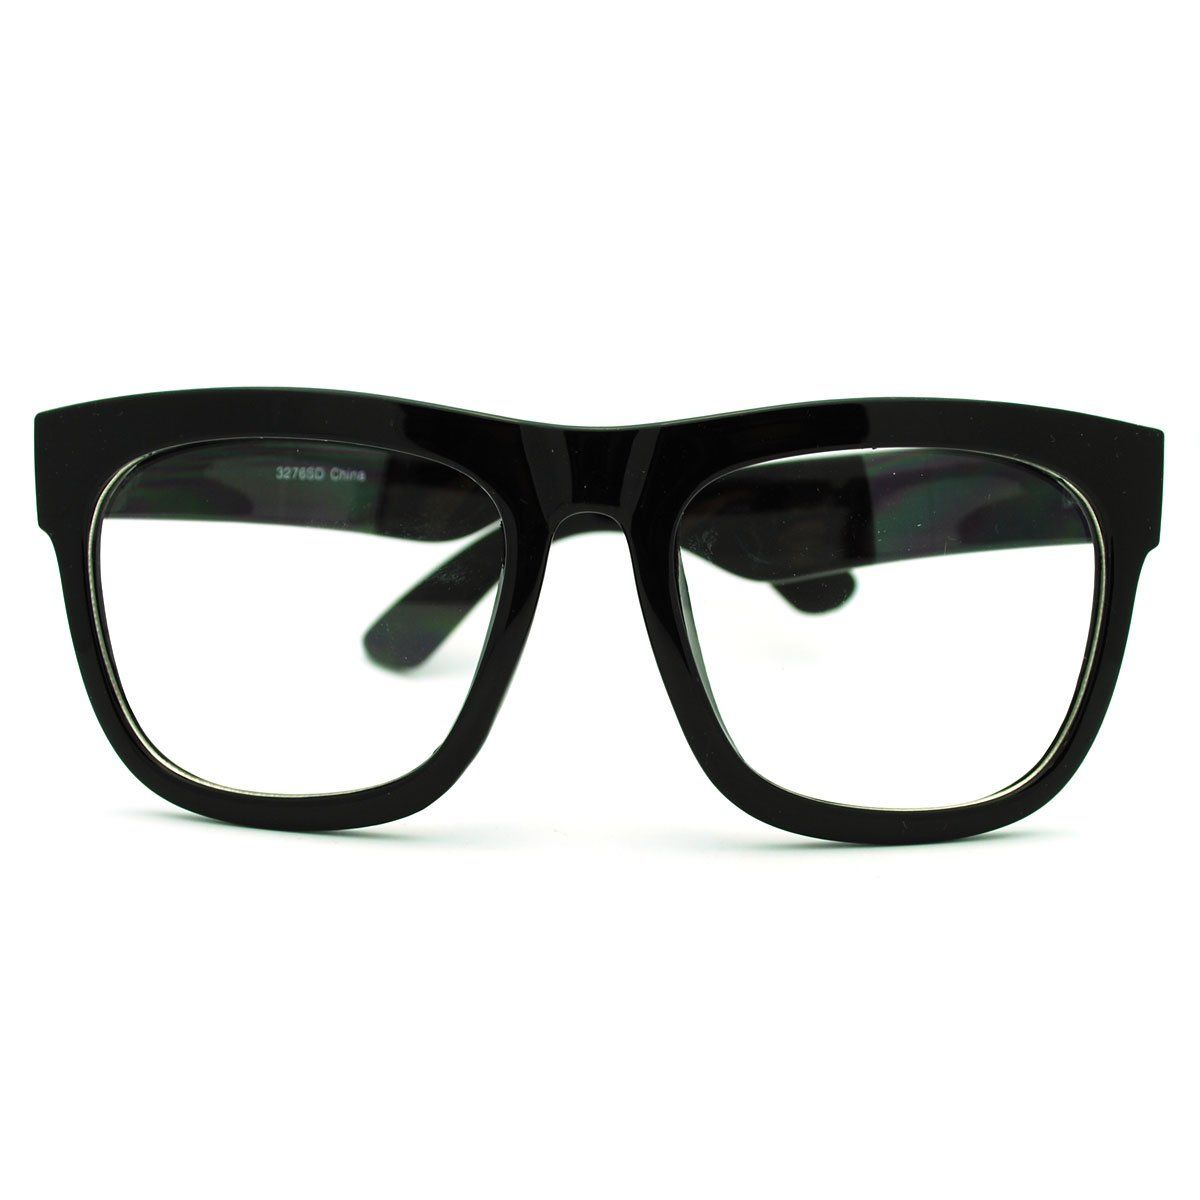 Amazon.com: Black Oversized Wayfarer Square Glasses Thick Horn Rim ...